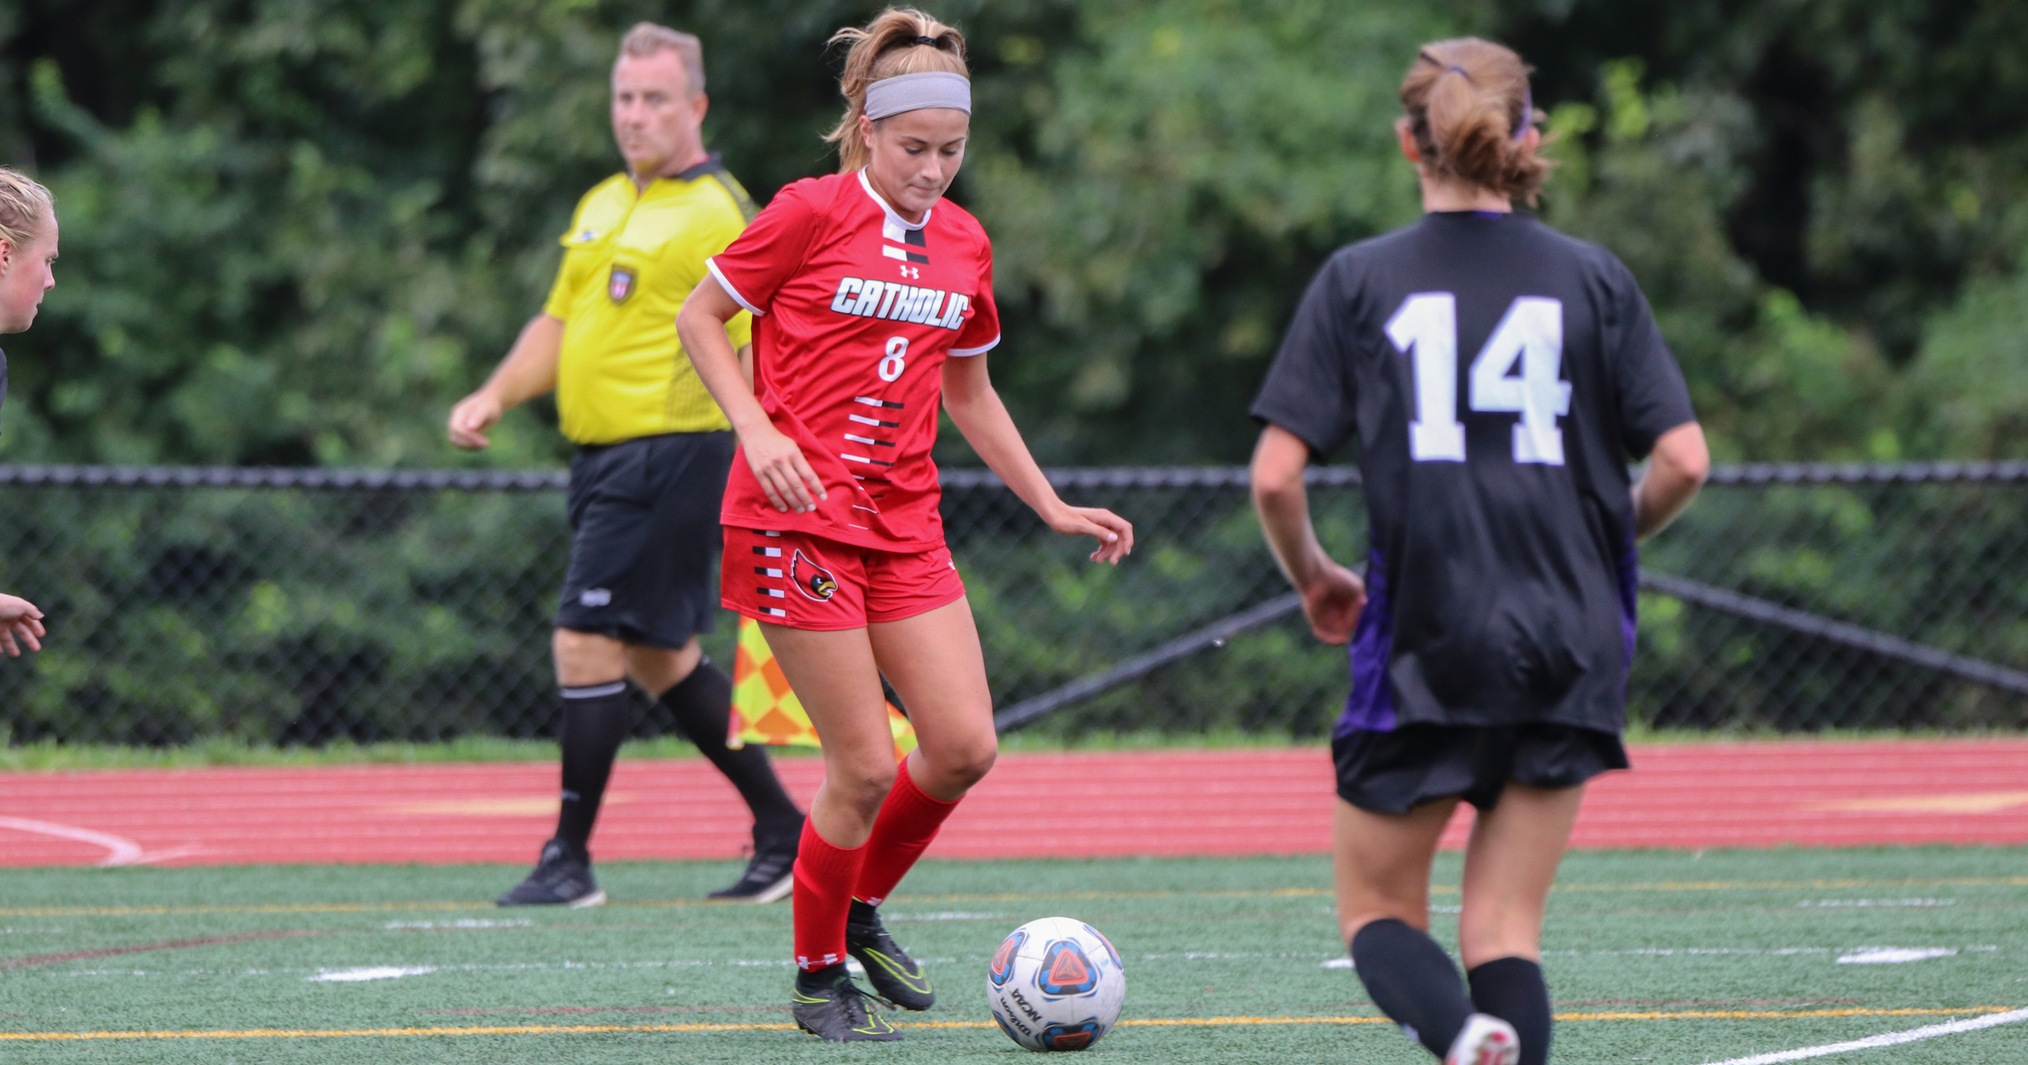 Cardinals Open D.C. Classic with 1-0 Win